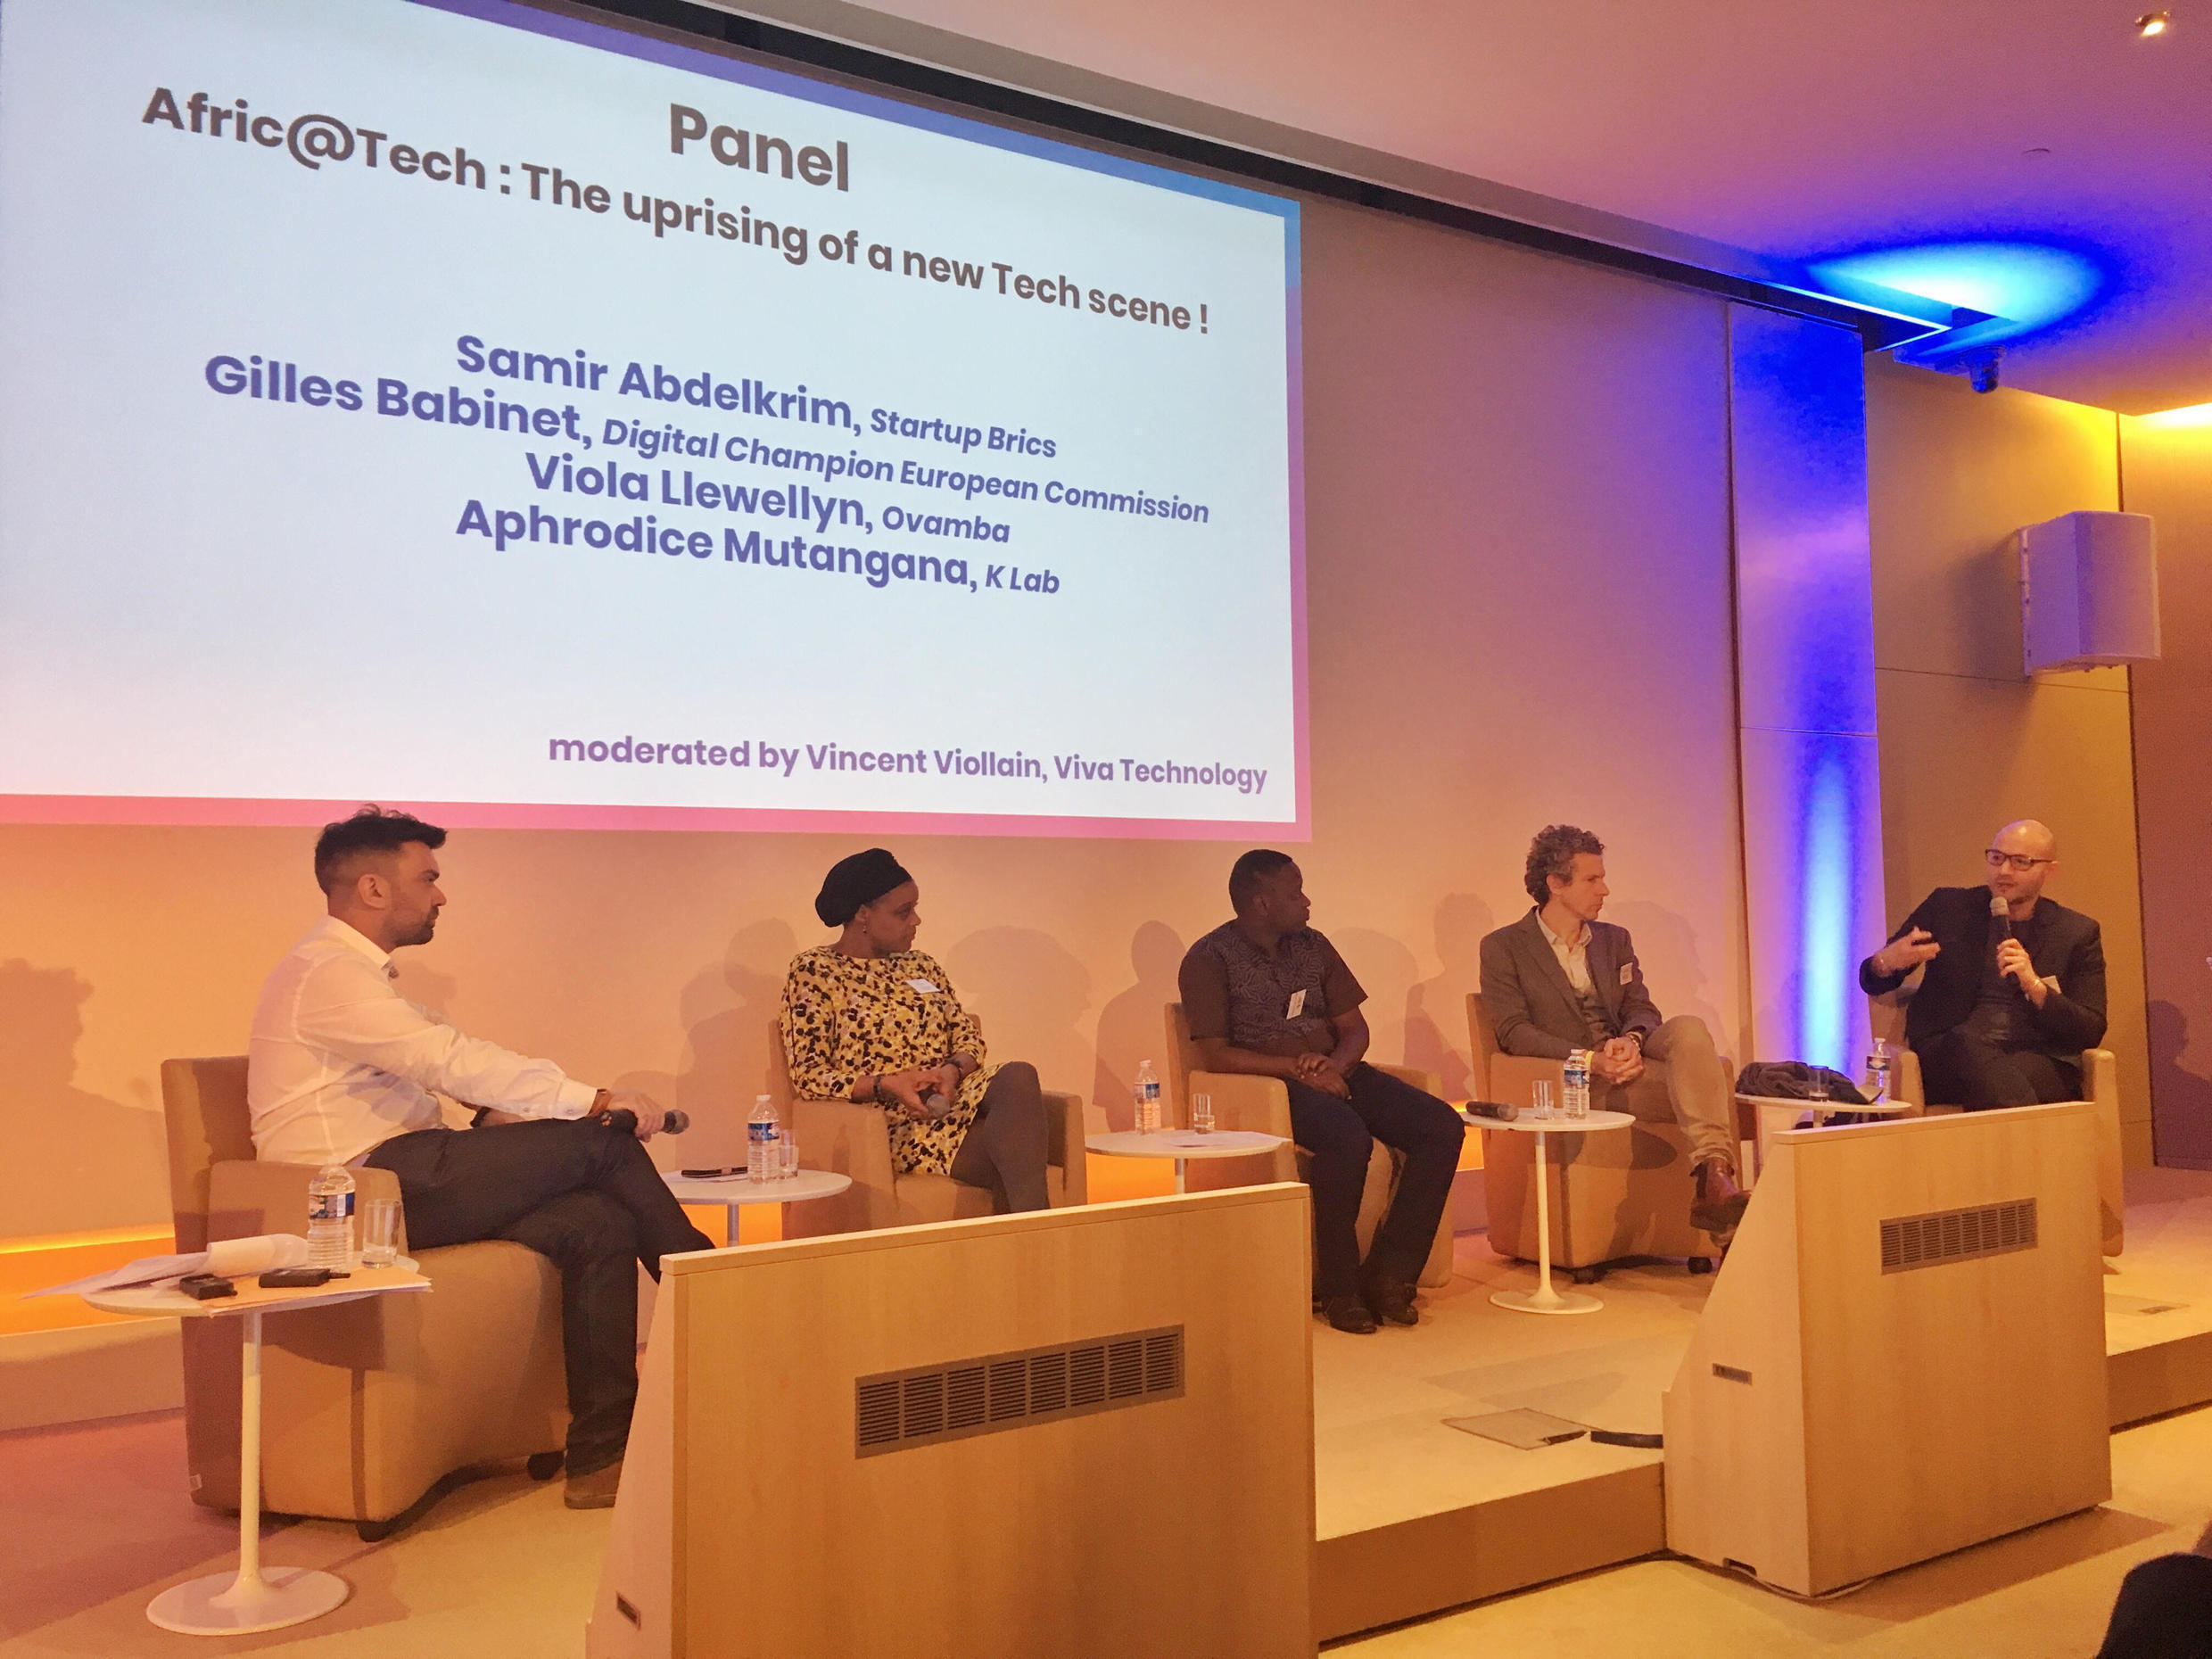 Llewellyn participates in the Afric@Tech panel on 21 March in Paris